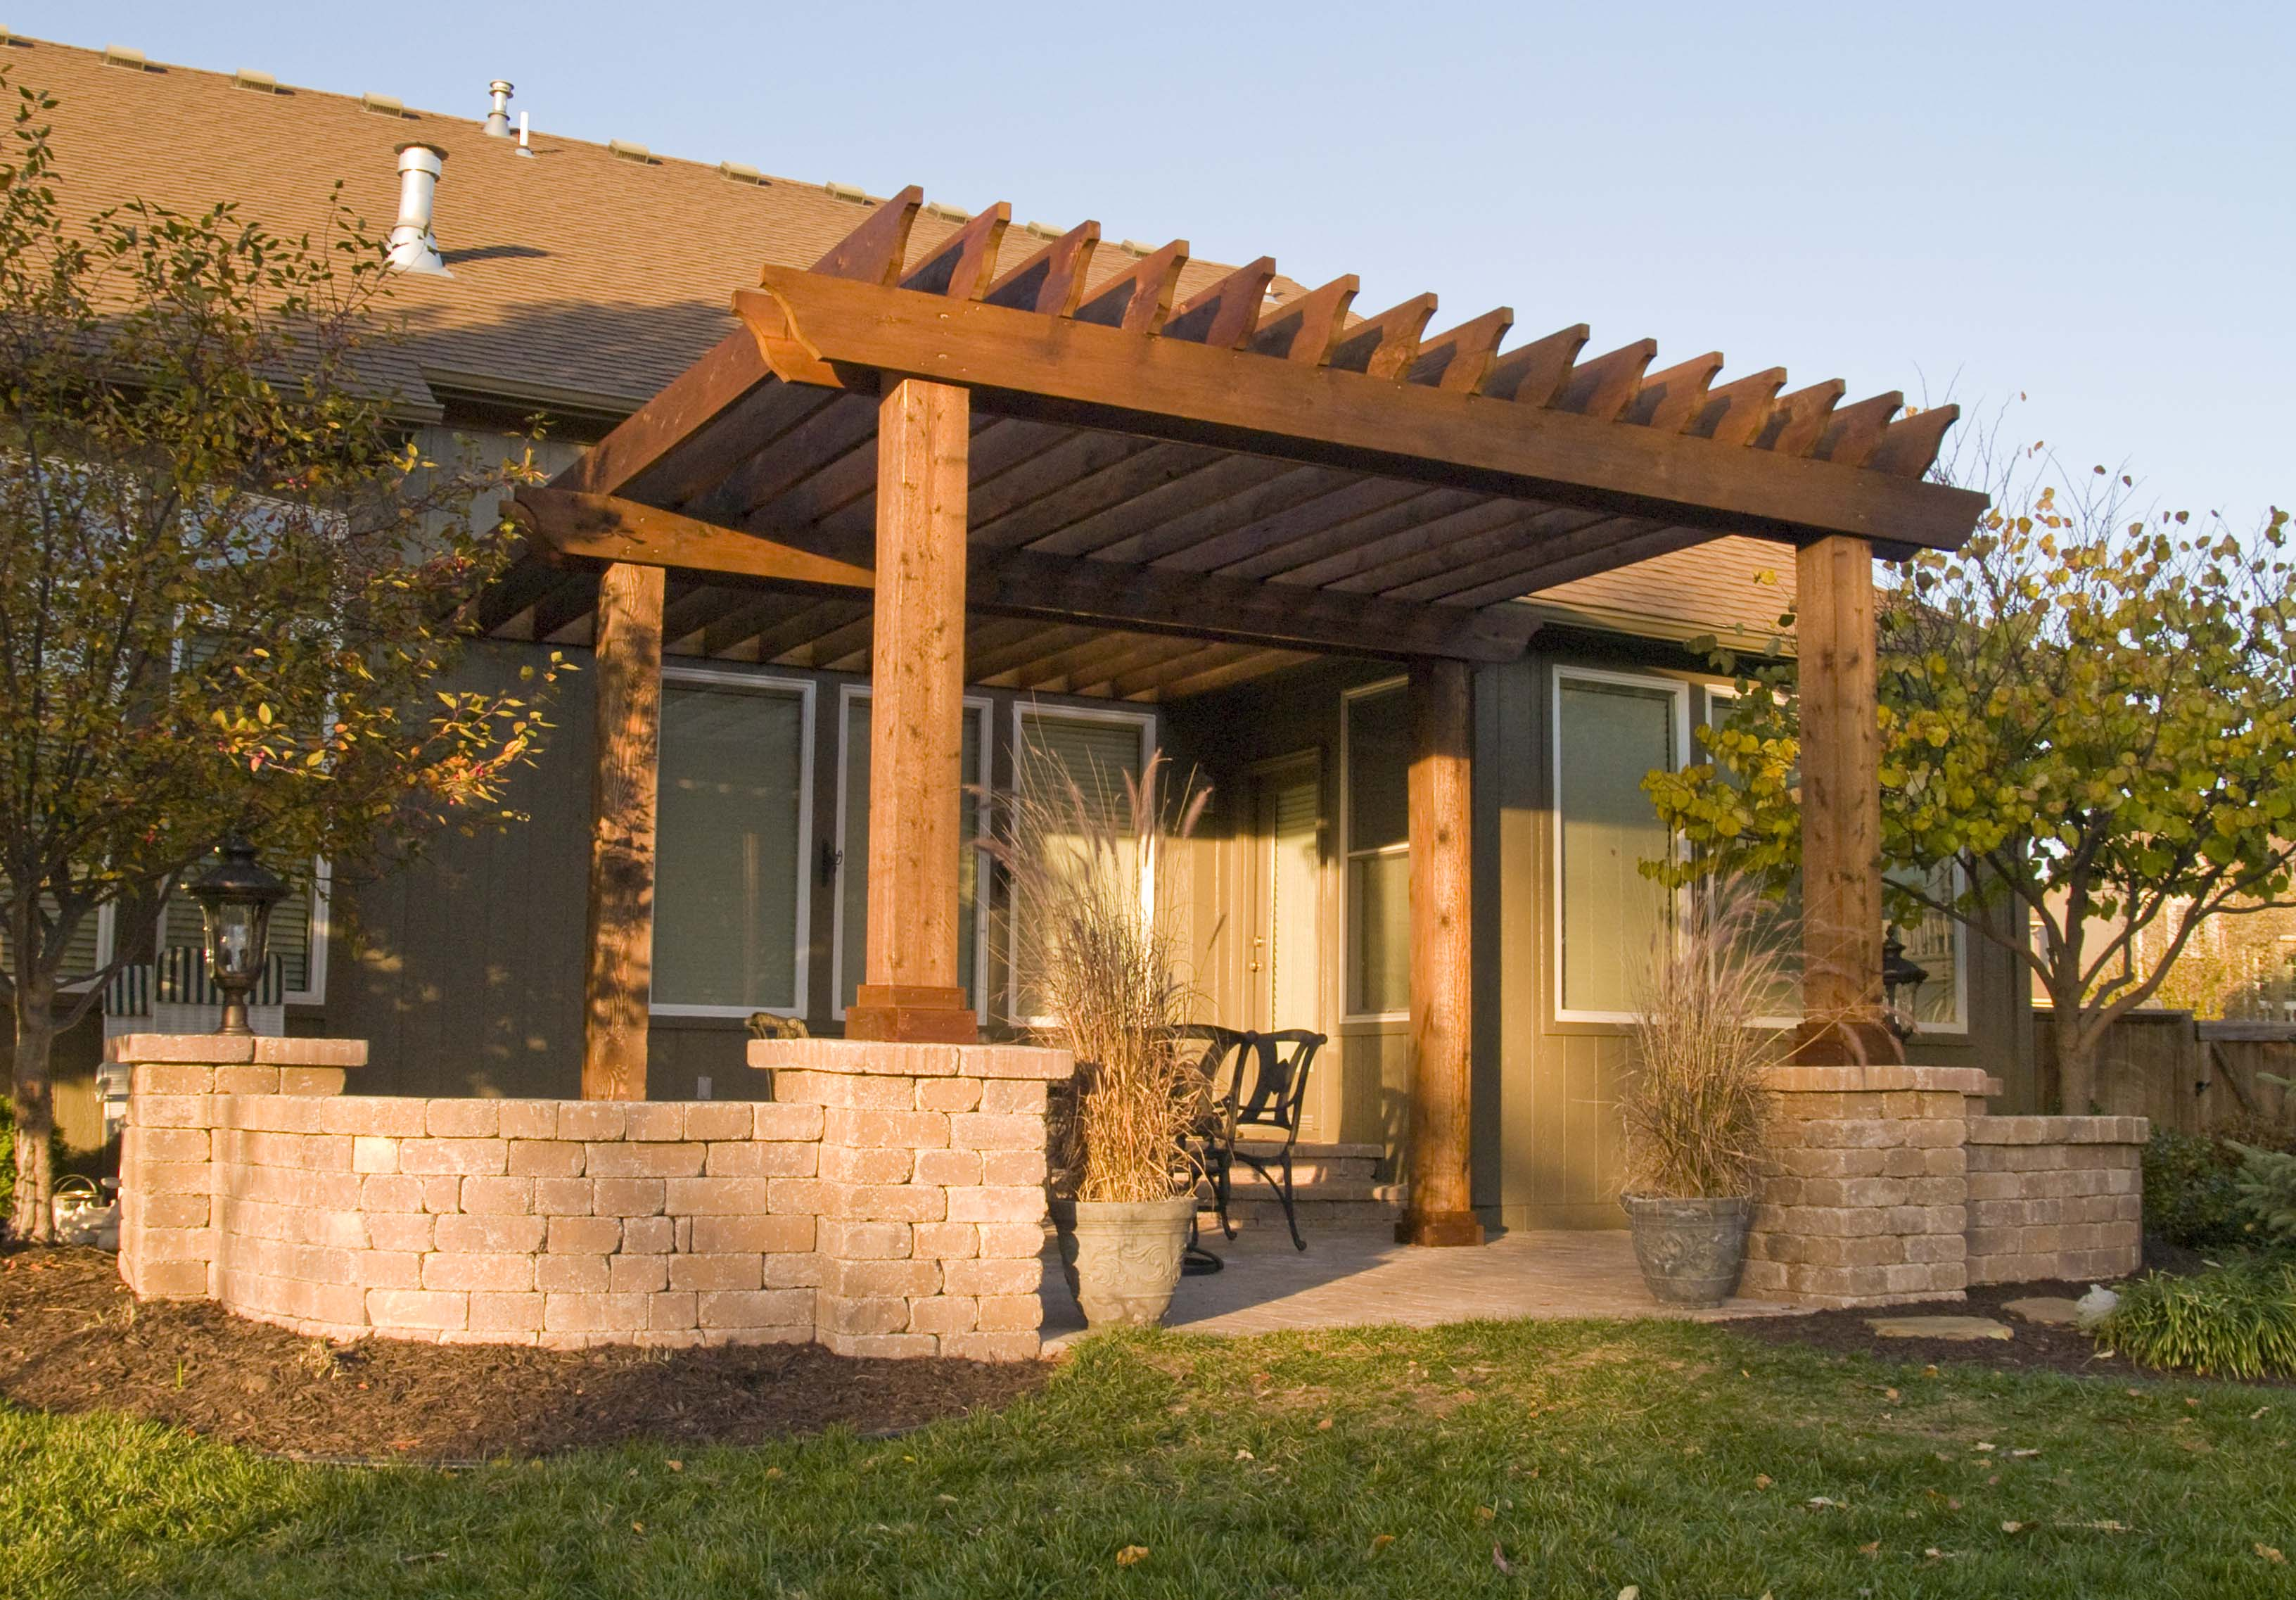 Charming Pergola plans on teracce with chairs ideas with window on olive wall